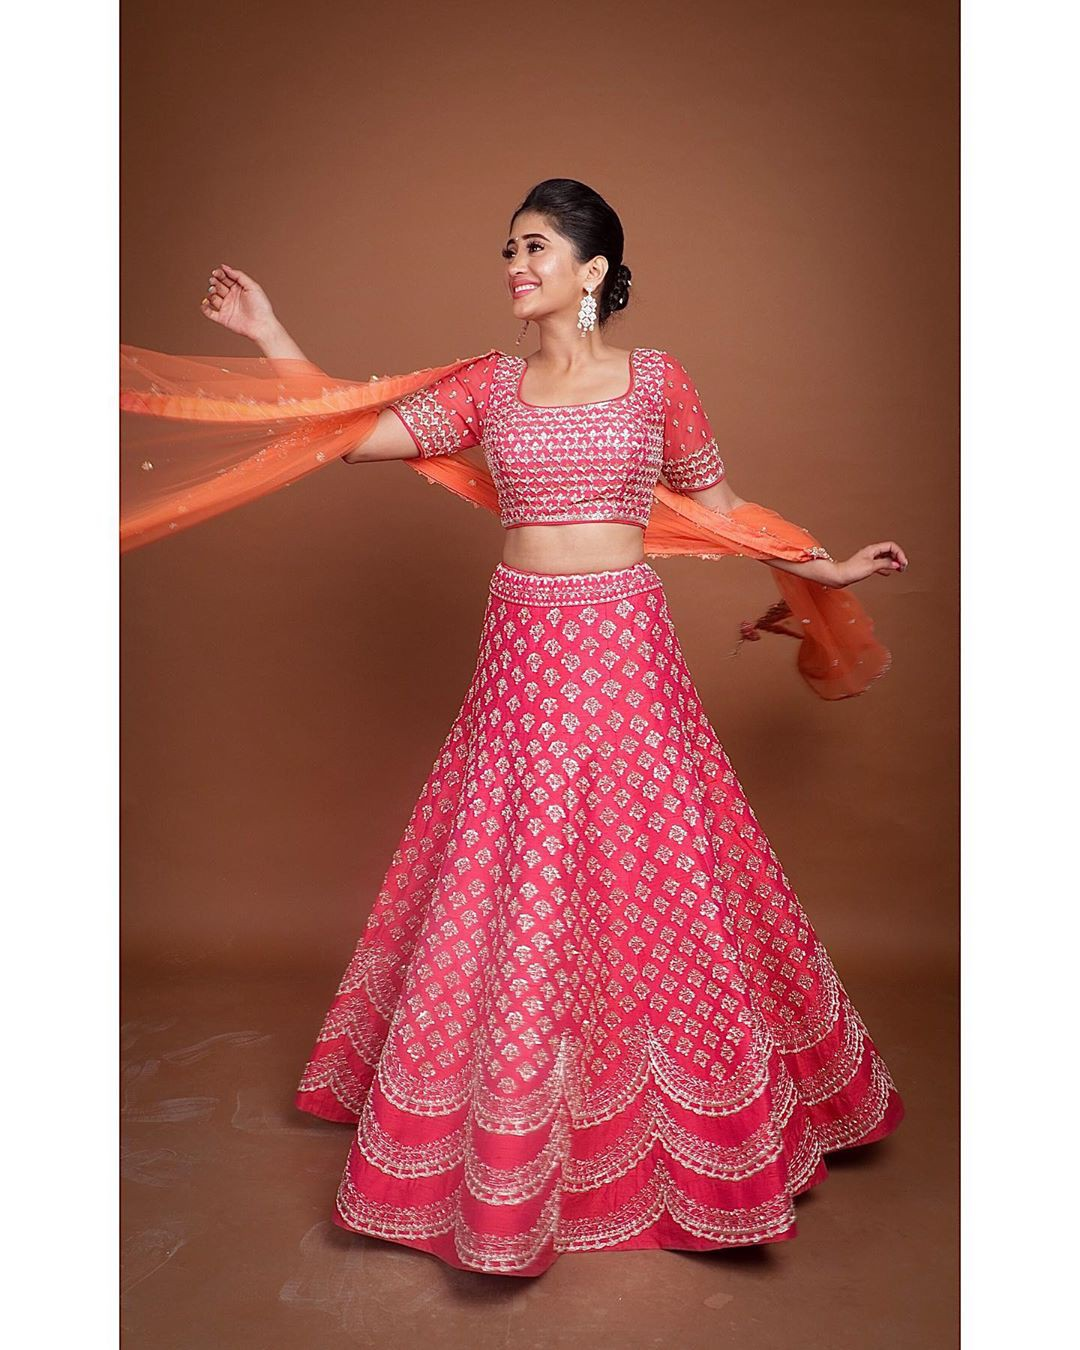 Magenta and orange dress formal wear, embroidery